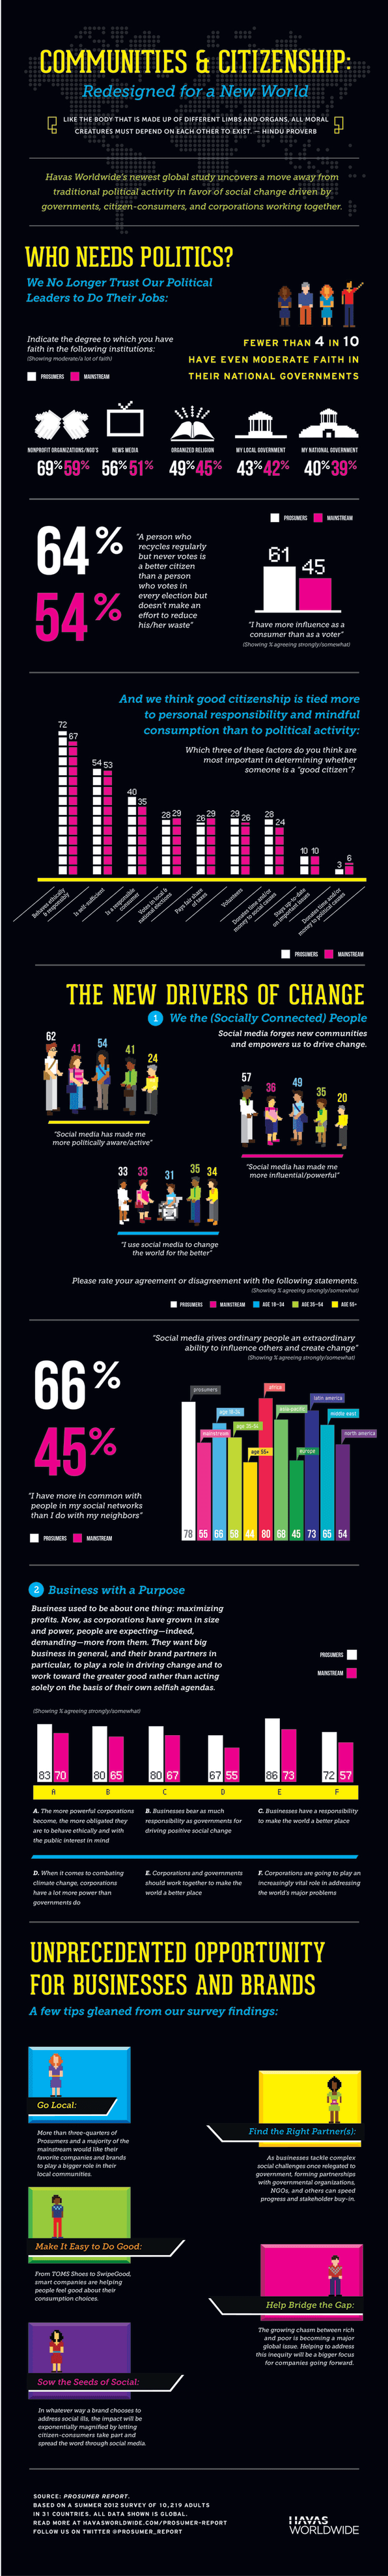 how brands and personal responsibility are trumping politics see the whole infographic below click to zoom